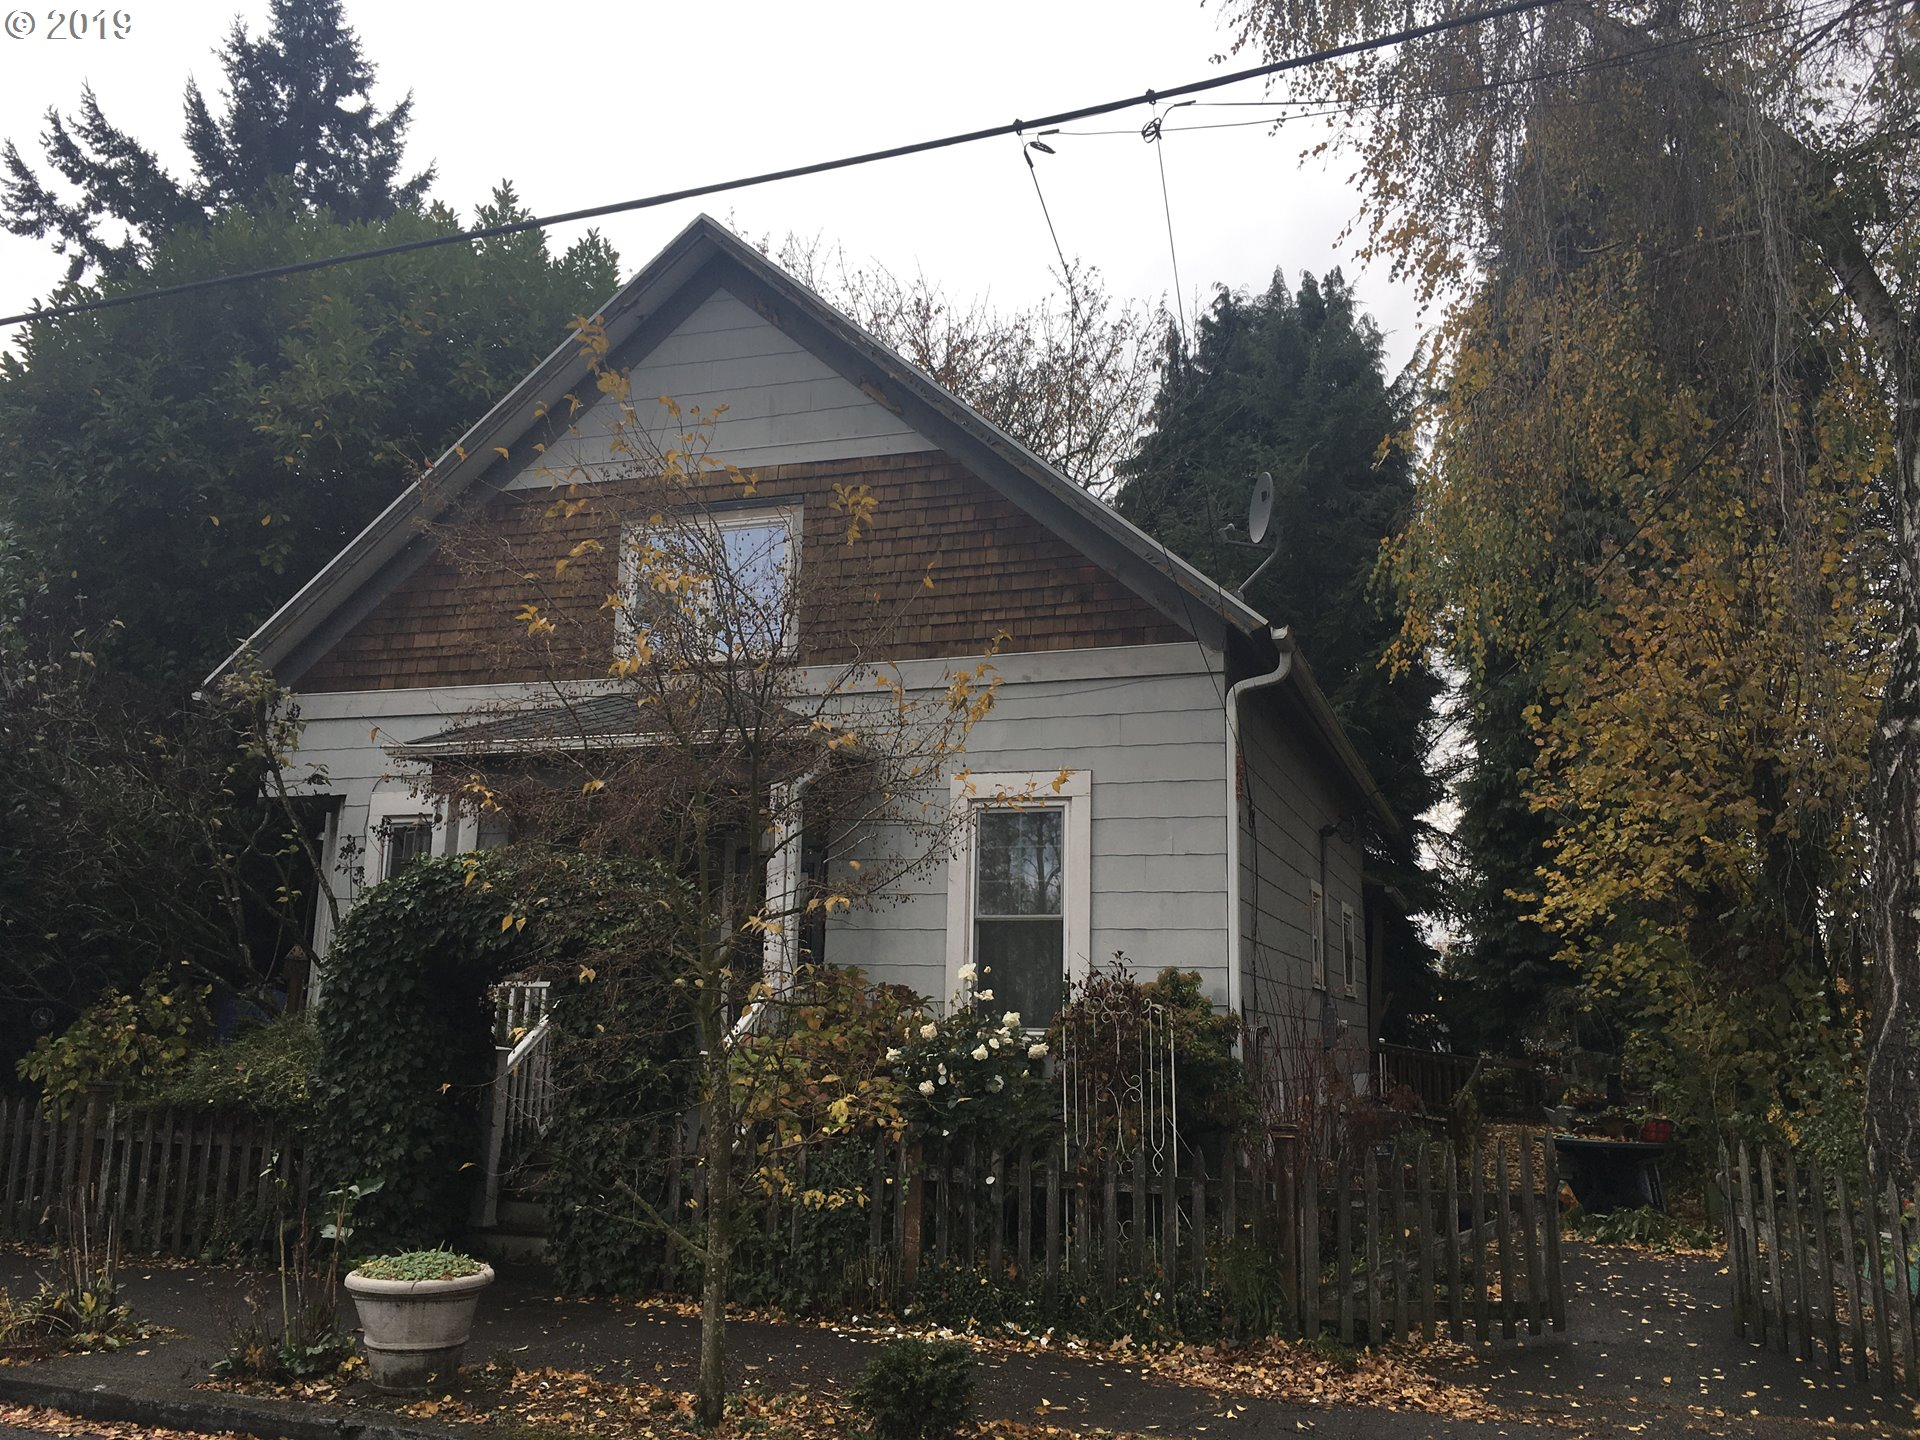 Super location and flexible zoning!  CM-2 (buyer to confirm all data w/city of Portland). Tons of character, full lower lever w/ kitchen, washer/dryer & full bath; ready for potential second living quarter/ADU/Air B&B! Separate entrance in place. Most newer windows, spacious back yard. So much potential here! [Home Energy Score = 3. HES Report at https://rpt.greenbuildingregistry.com/hes/OR10084494]